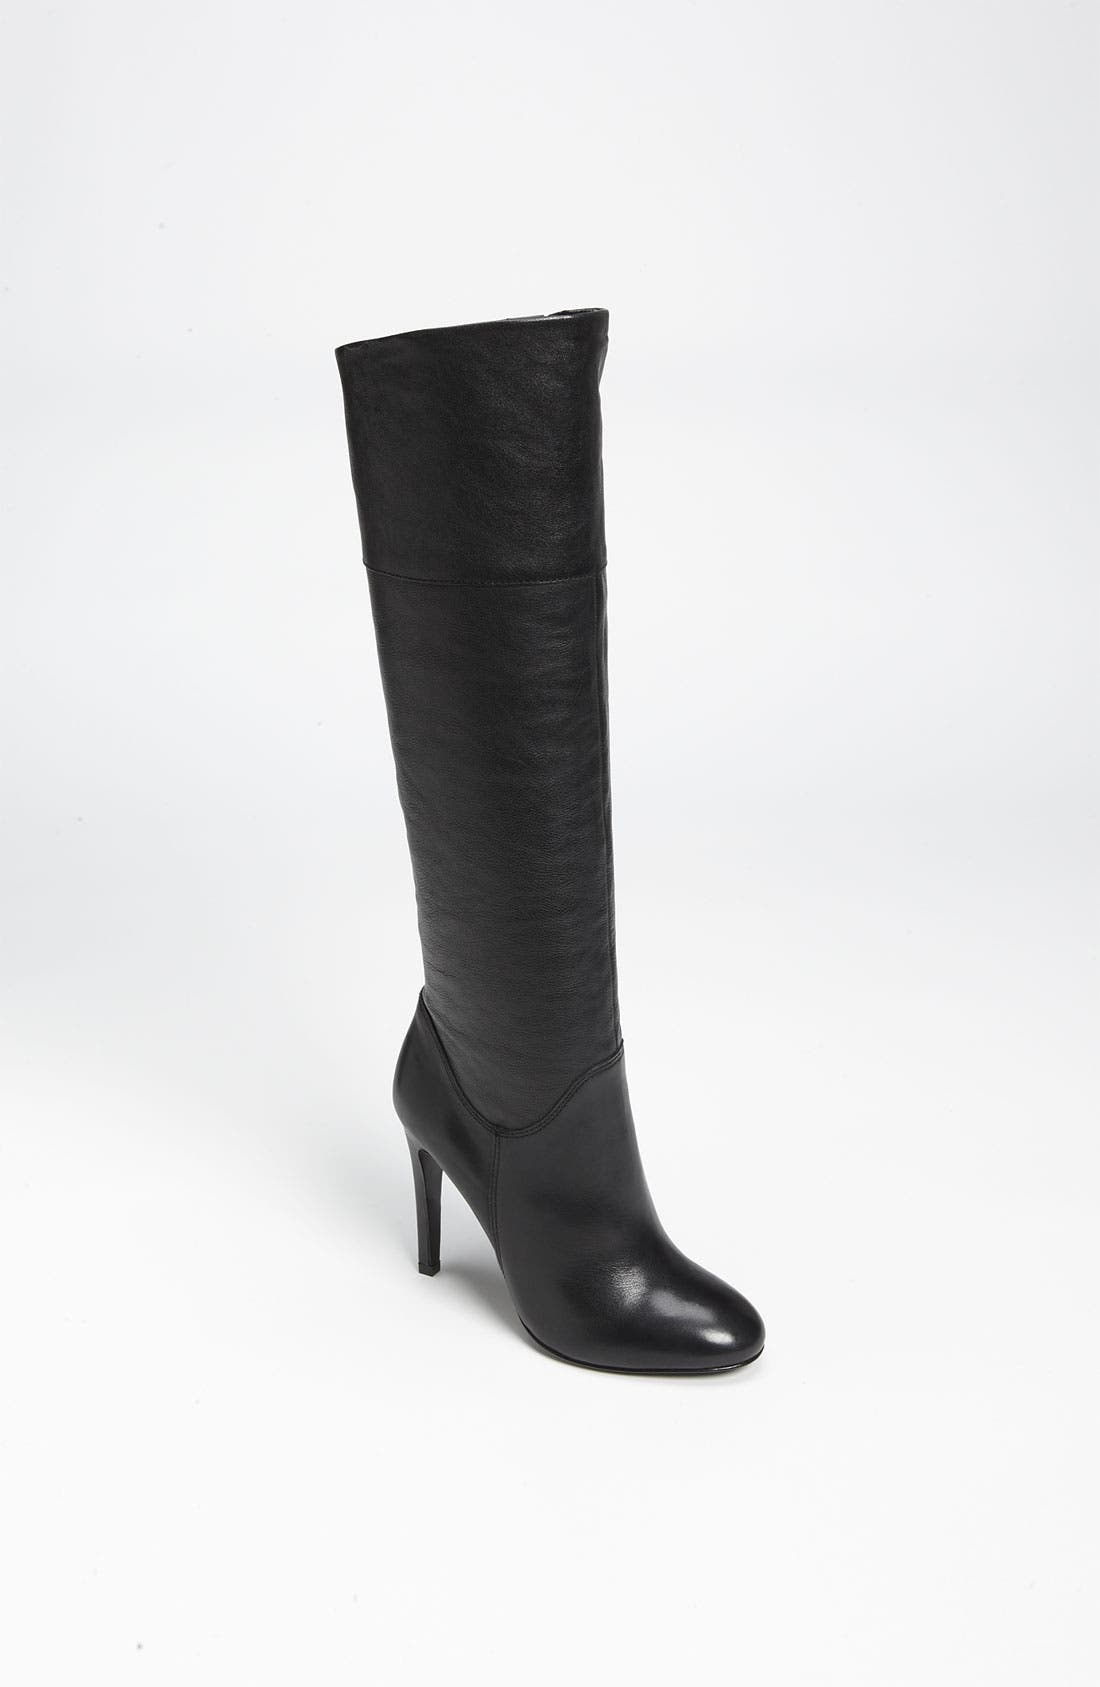 Main Image - 7 For All Mankind® 'Vignet' Boot (Online Exclusive)